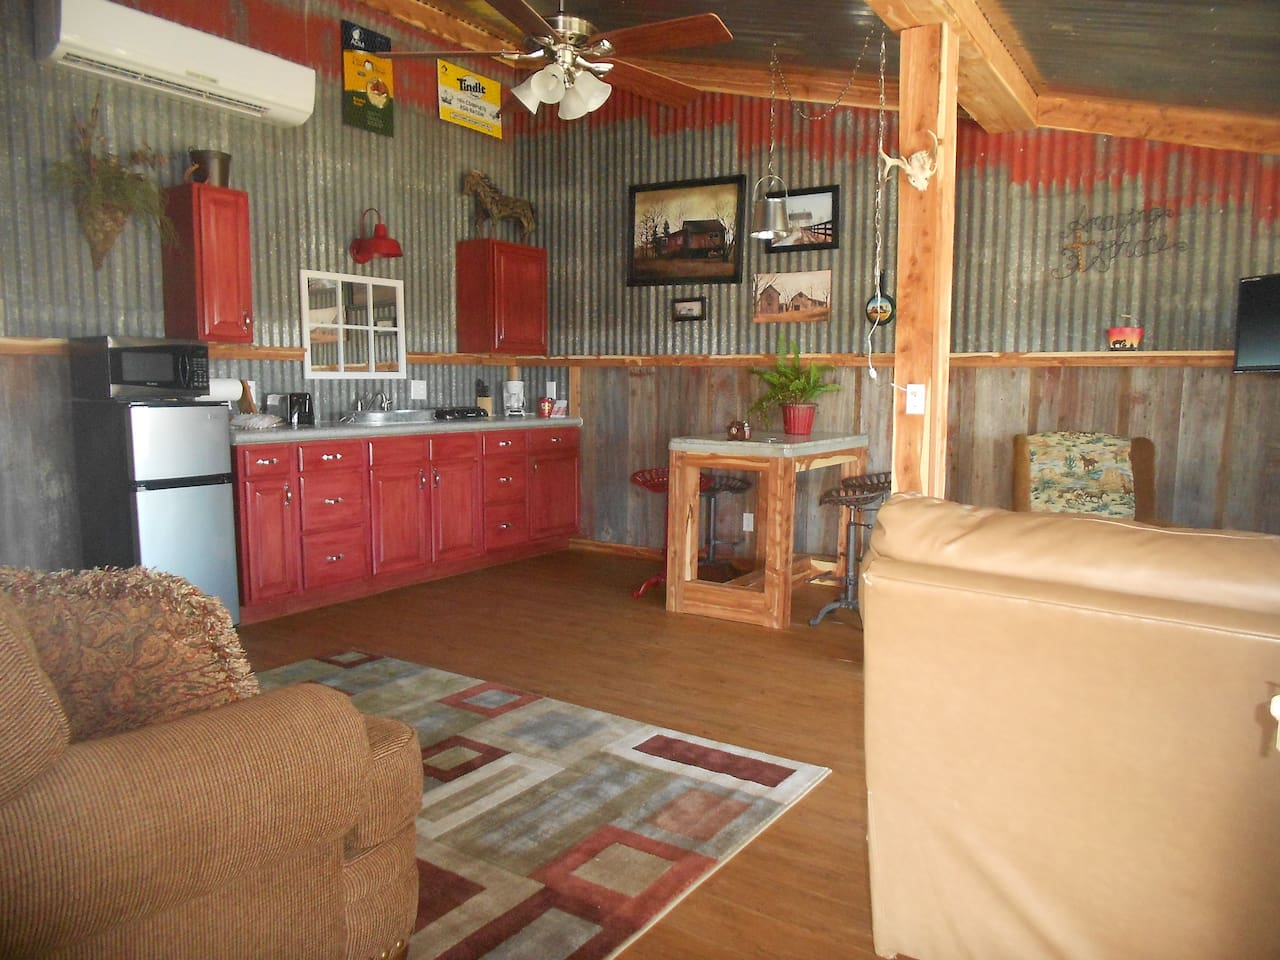 Living/kitchen area Rustic room